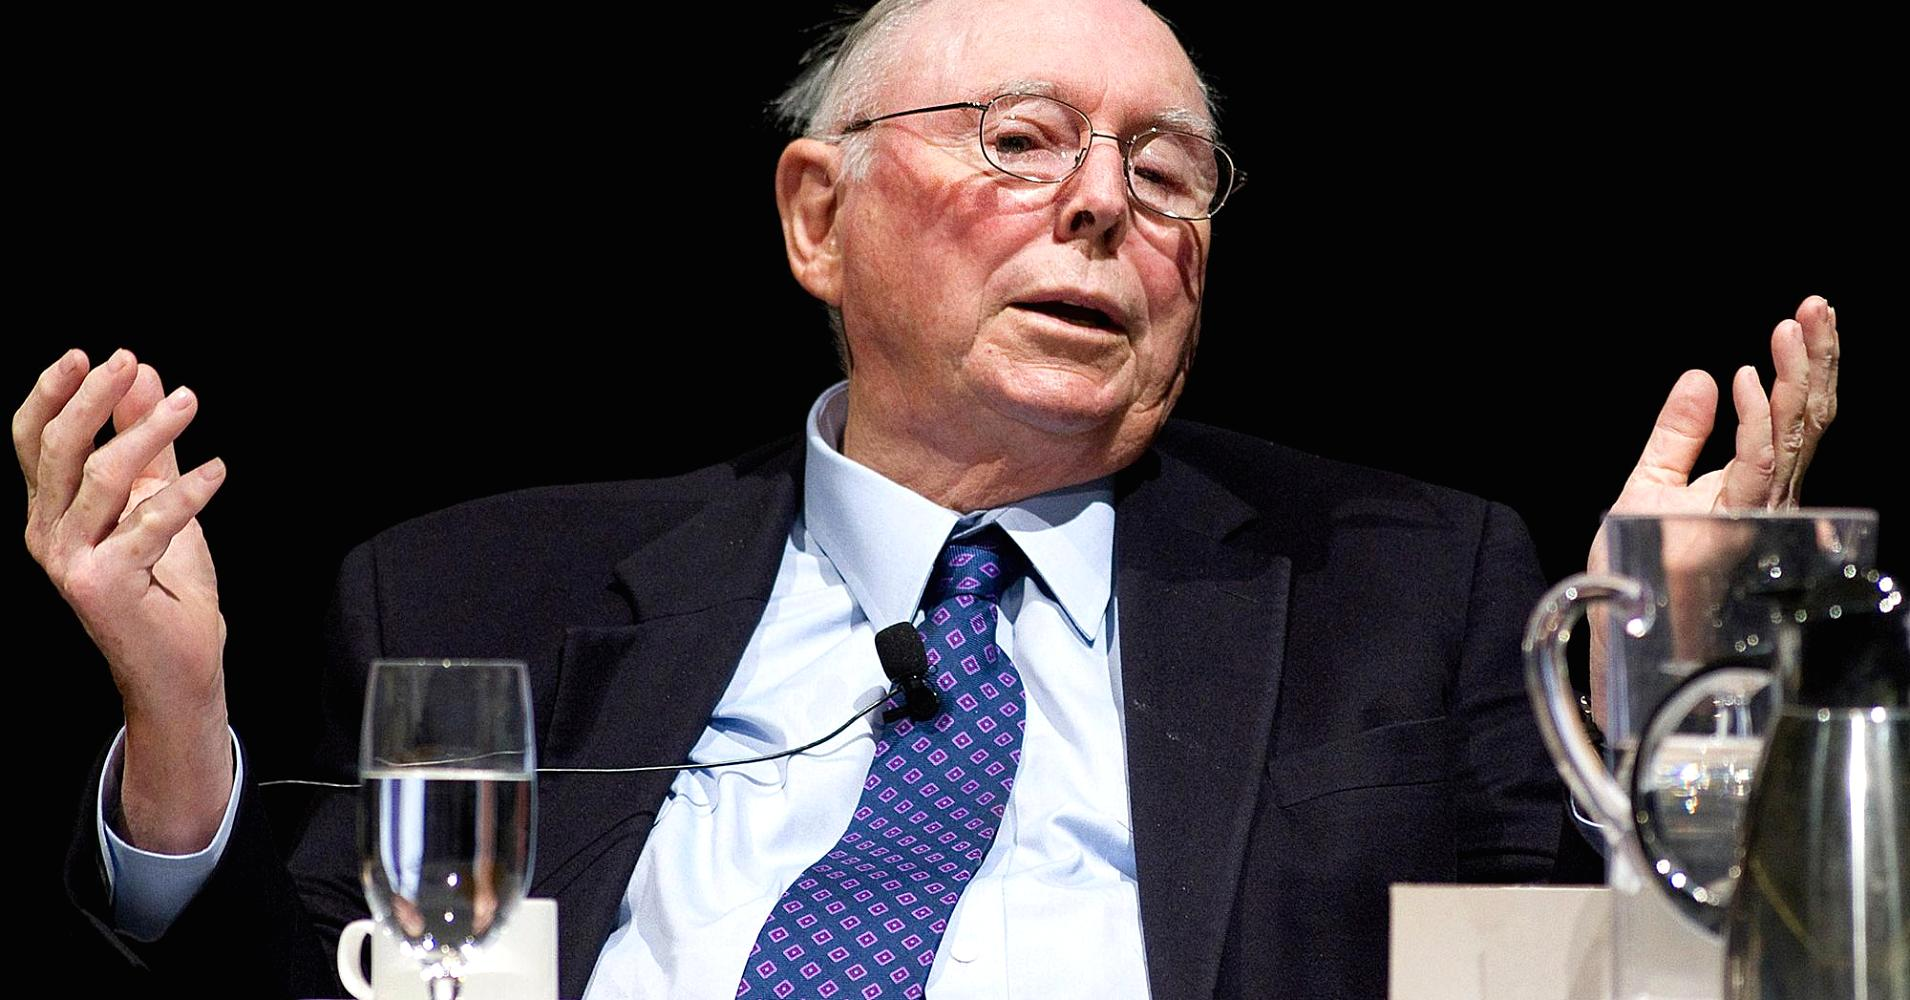 Charlie Munger: There's No Difference Between Trading Bitcoin and Harvested Baby Brains